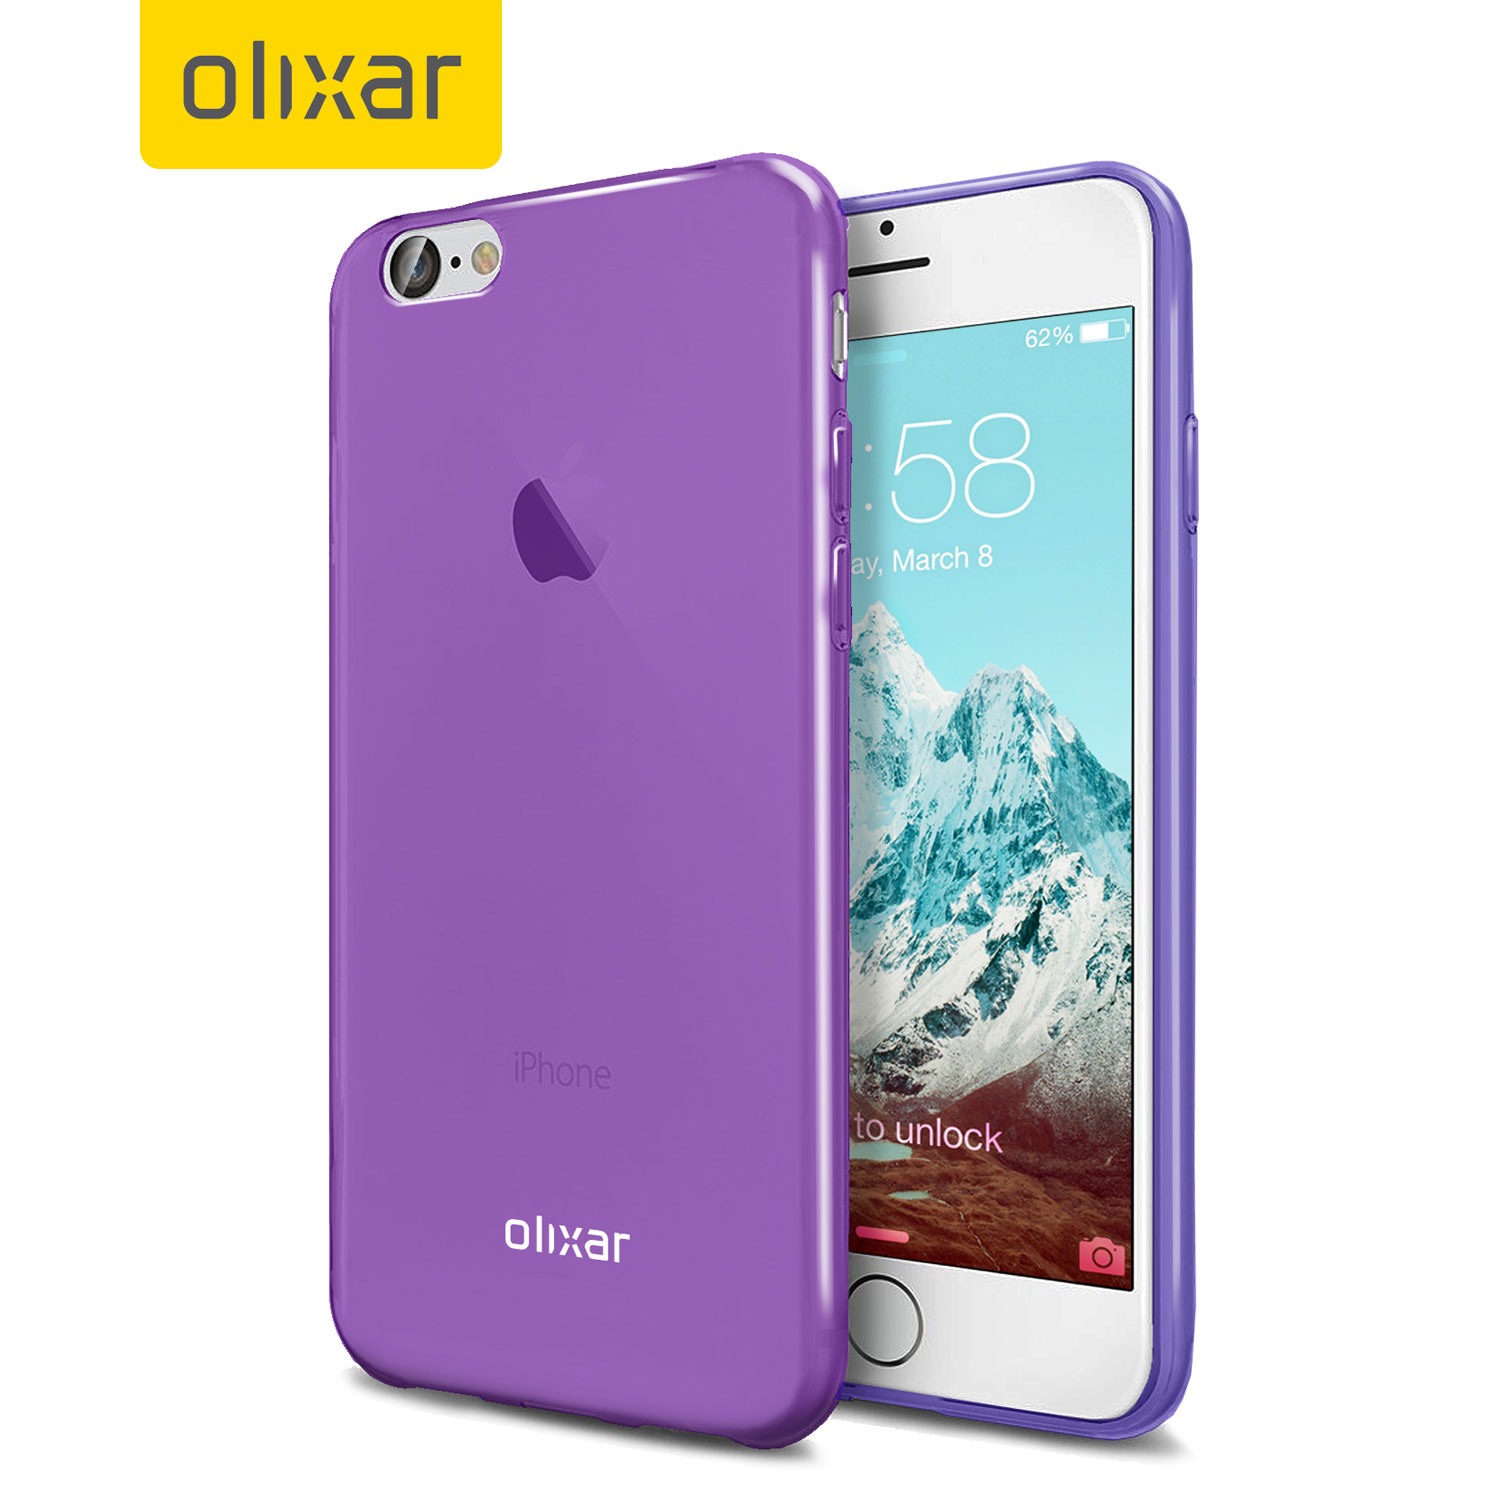 iPhone-7-and-7-Plus-case-images-by-Olixar (1)